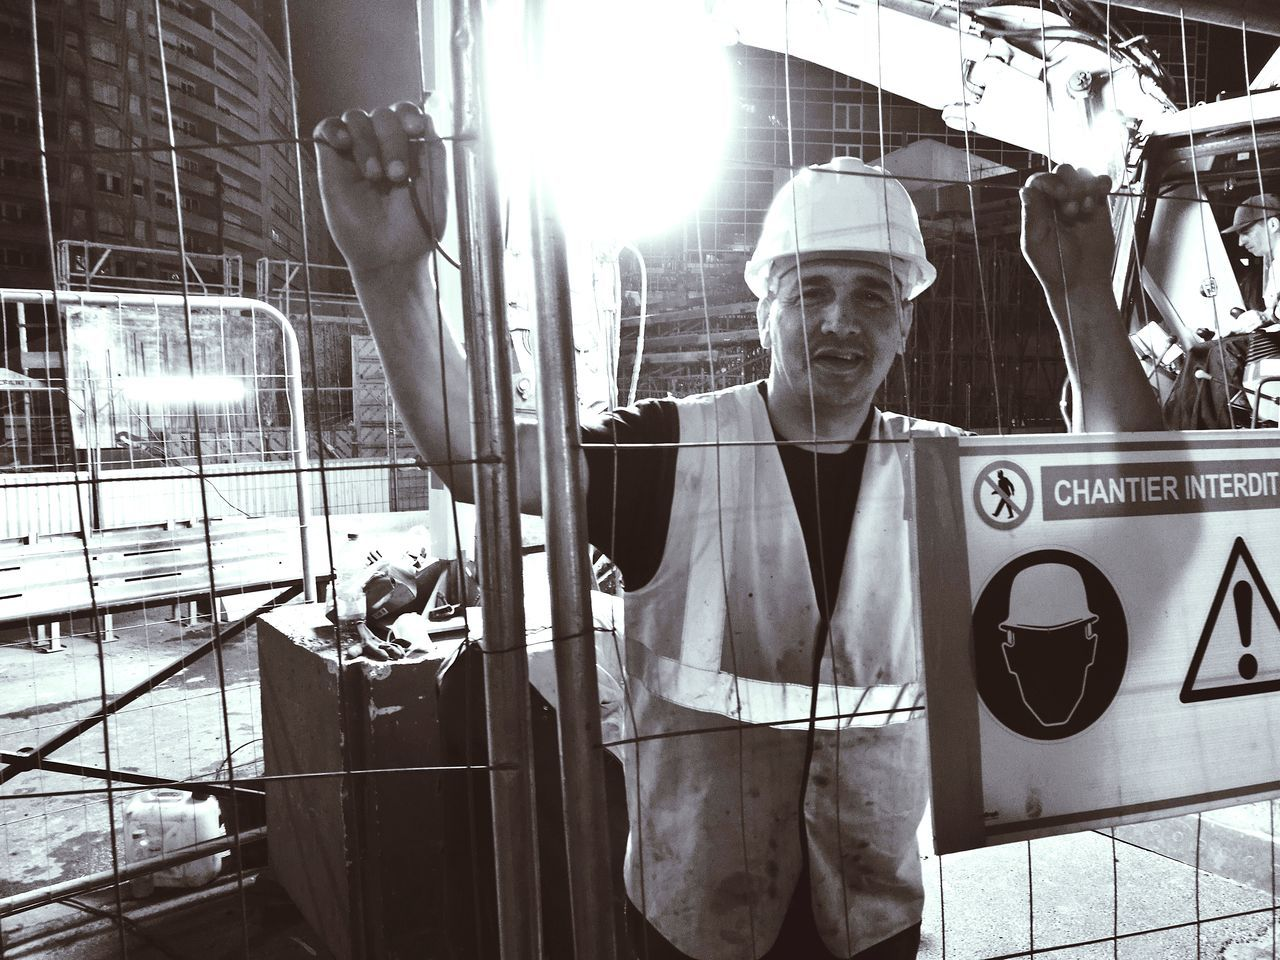 real people, one person, looking at camera, front view, portrait, standing, occupation, mid adult men, mid adult, young adult, manual worker, reflective clothing, indoors, headwear, day, hardhat, people